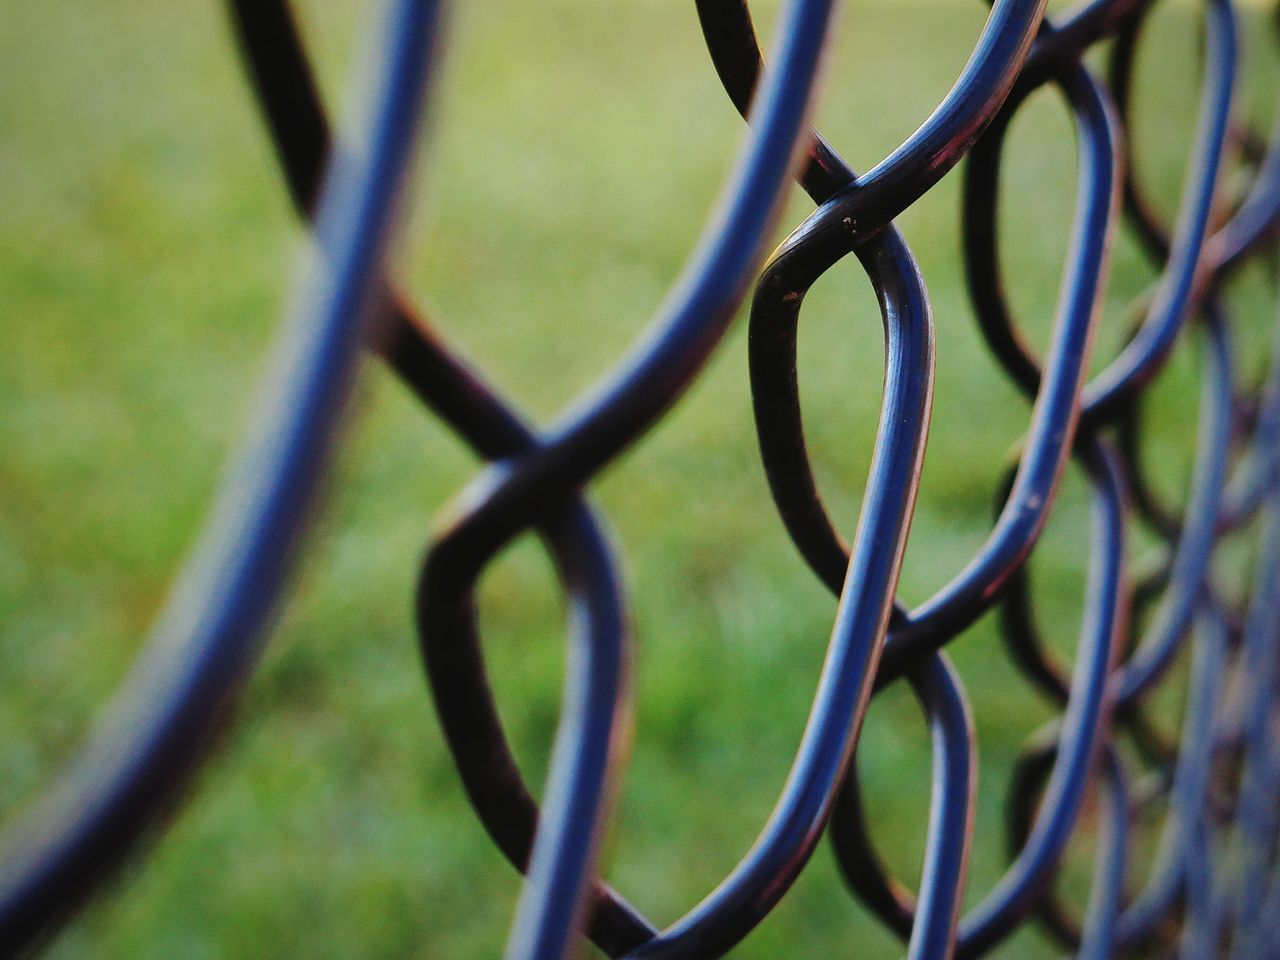 Chainlink Fence Metal Selective Focus No People Pattern Backgrounds Background Patterns Focus Foreground Green Background Grassy Background Black Fence Shallow Depth Of Field Canon Taking Photos Daily Photo Everyday Life Love Happy Peace Good Morning